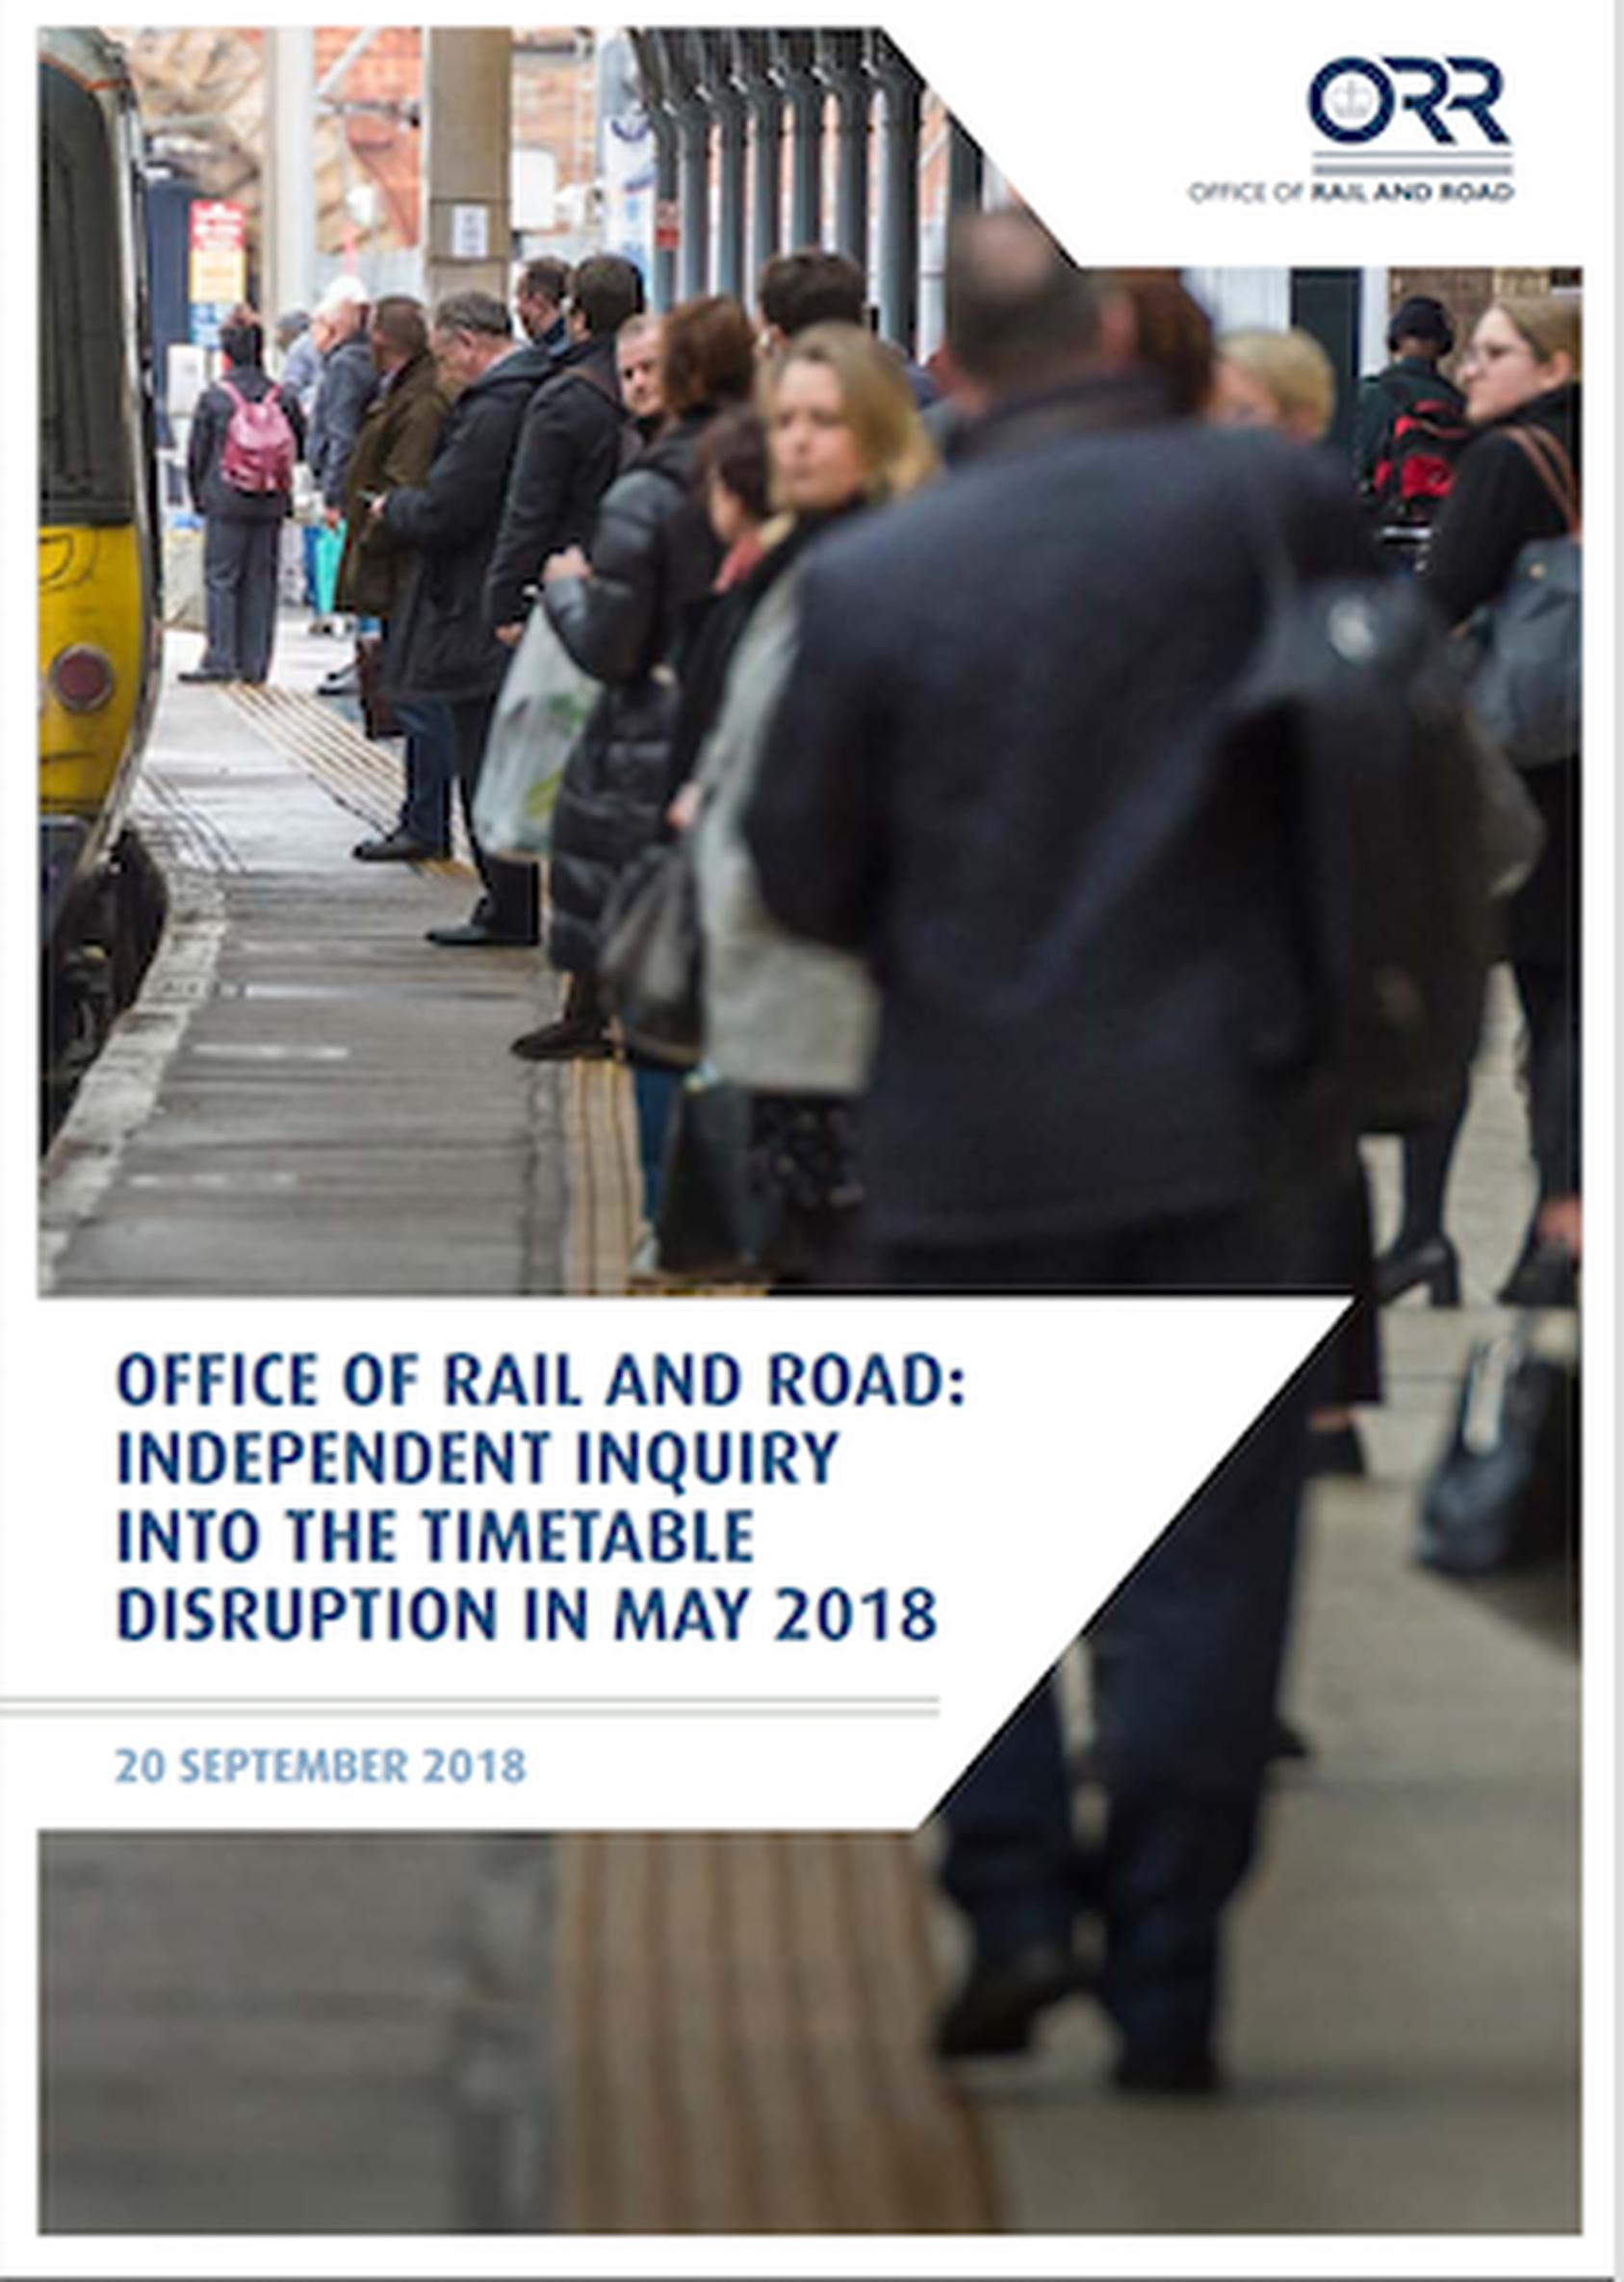 The Office of Rail and Road (ORR) has published its interim inquiry report into what caused the May 2018 timetable disruption